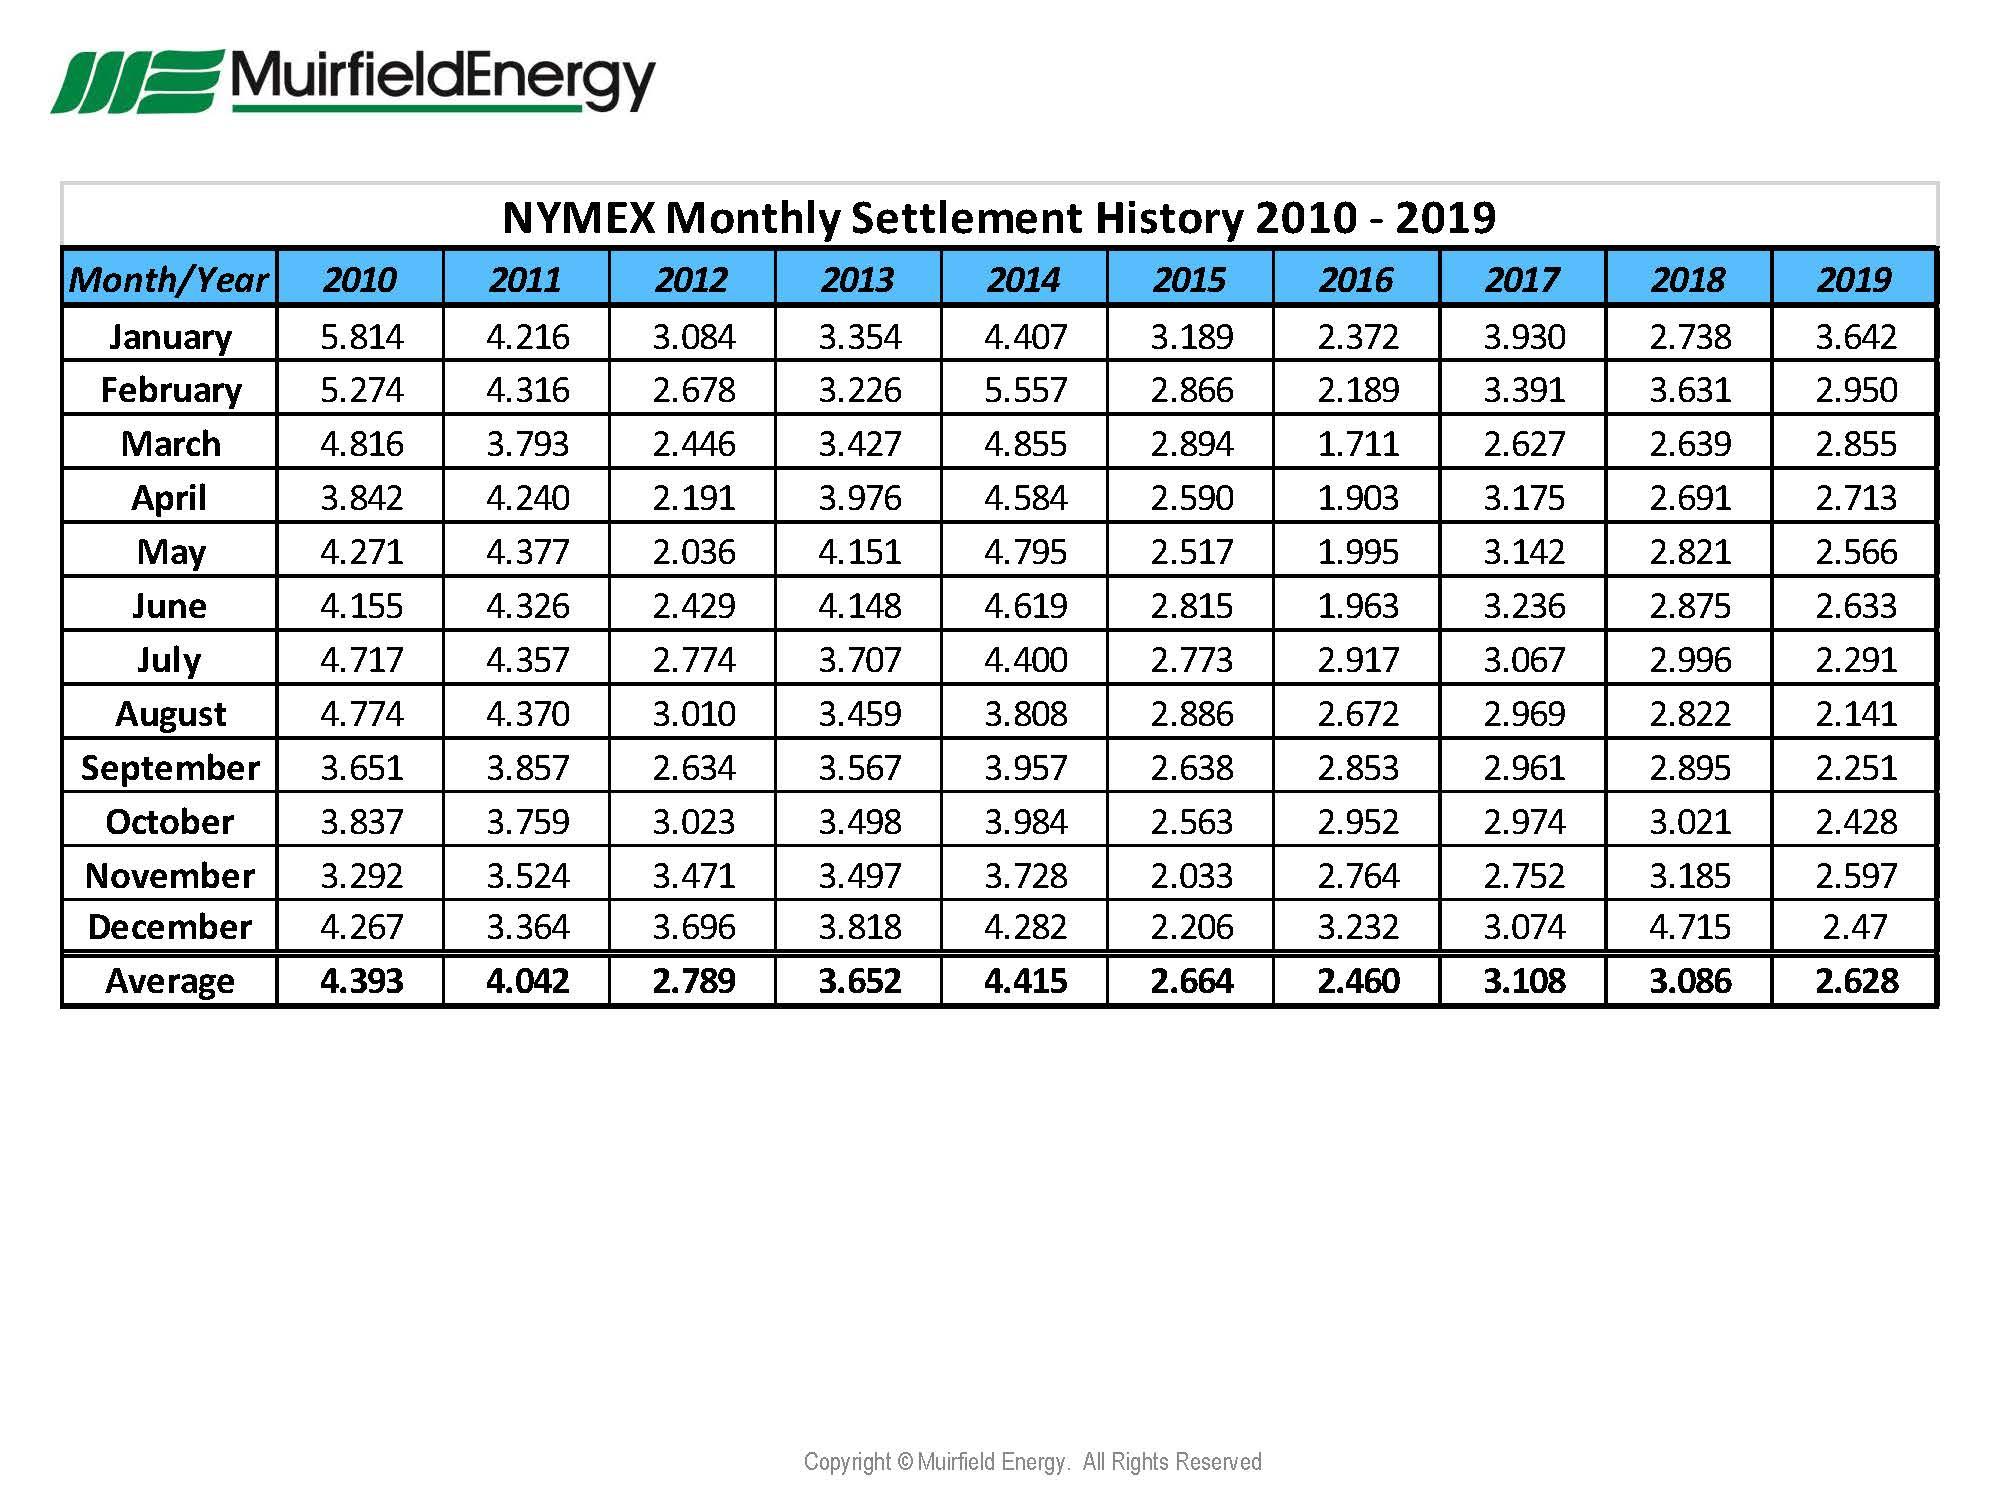 NYMEX-Natural-Gas-Monthly-Settlement-History-Prices-from-January-2010-through-December-2019